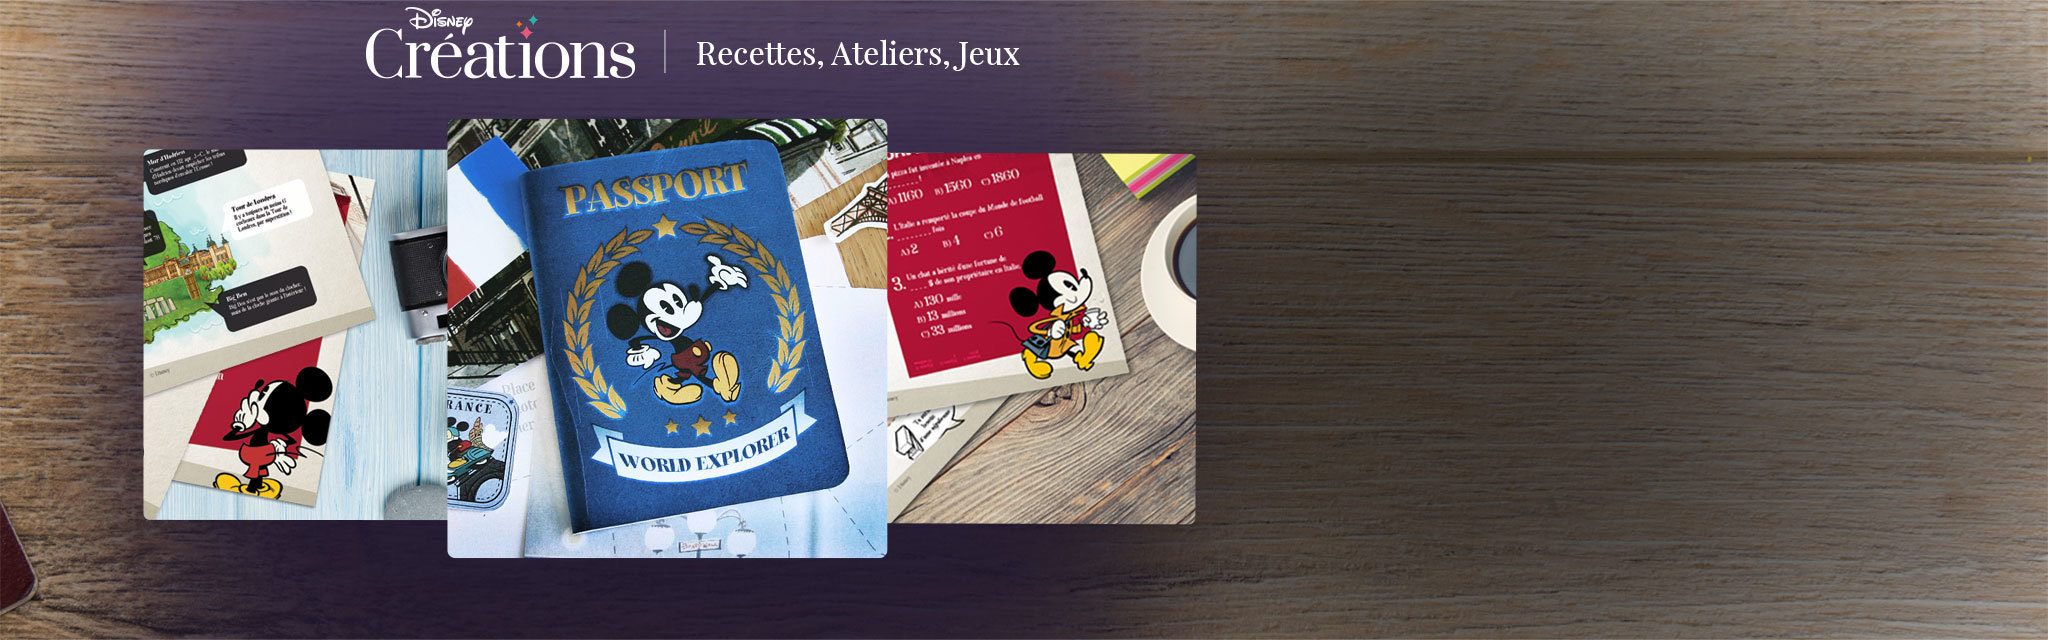 Travel with Mickey sept16 (hero)